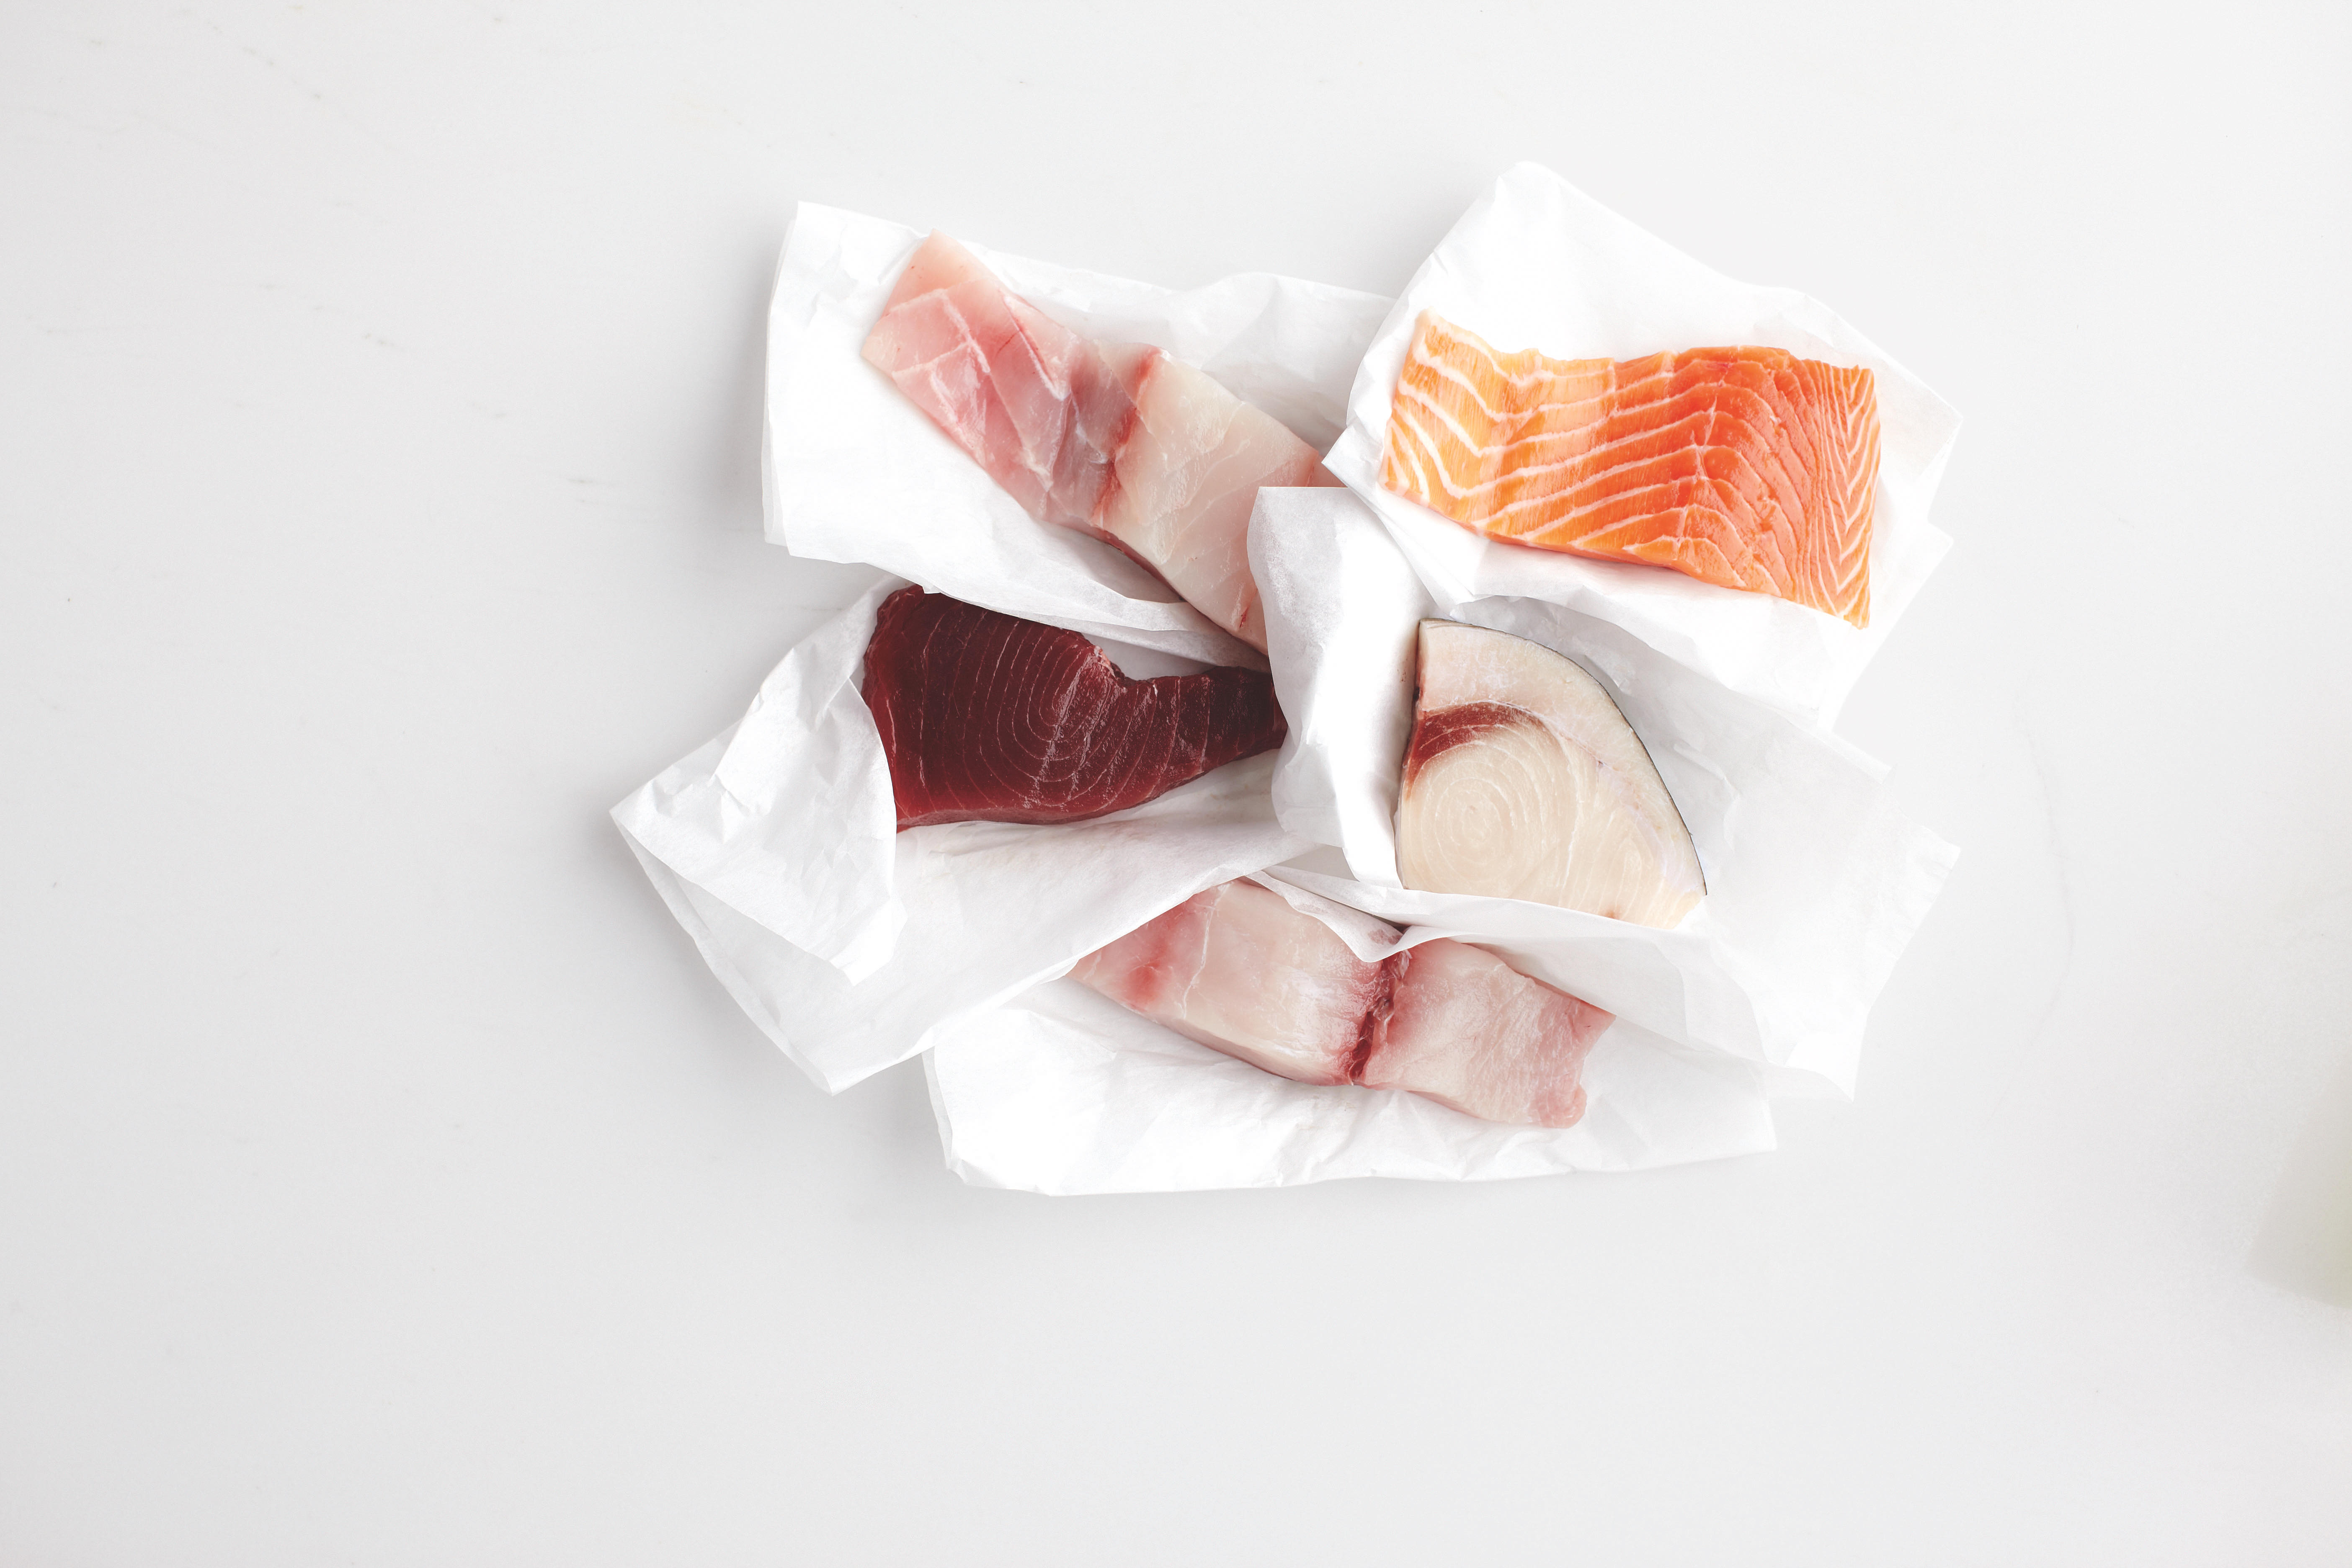 Storing Fish: What You Need to Know